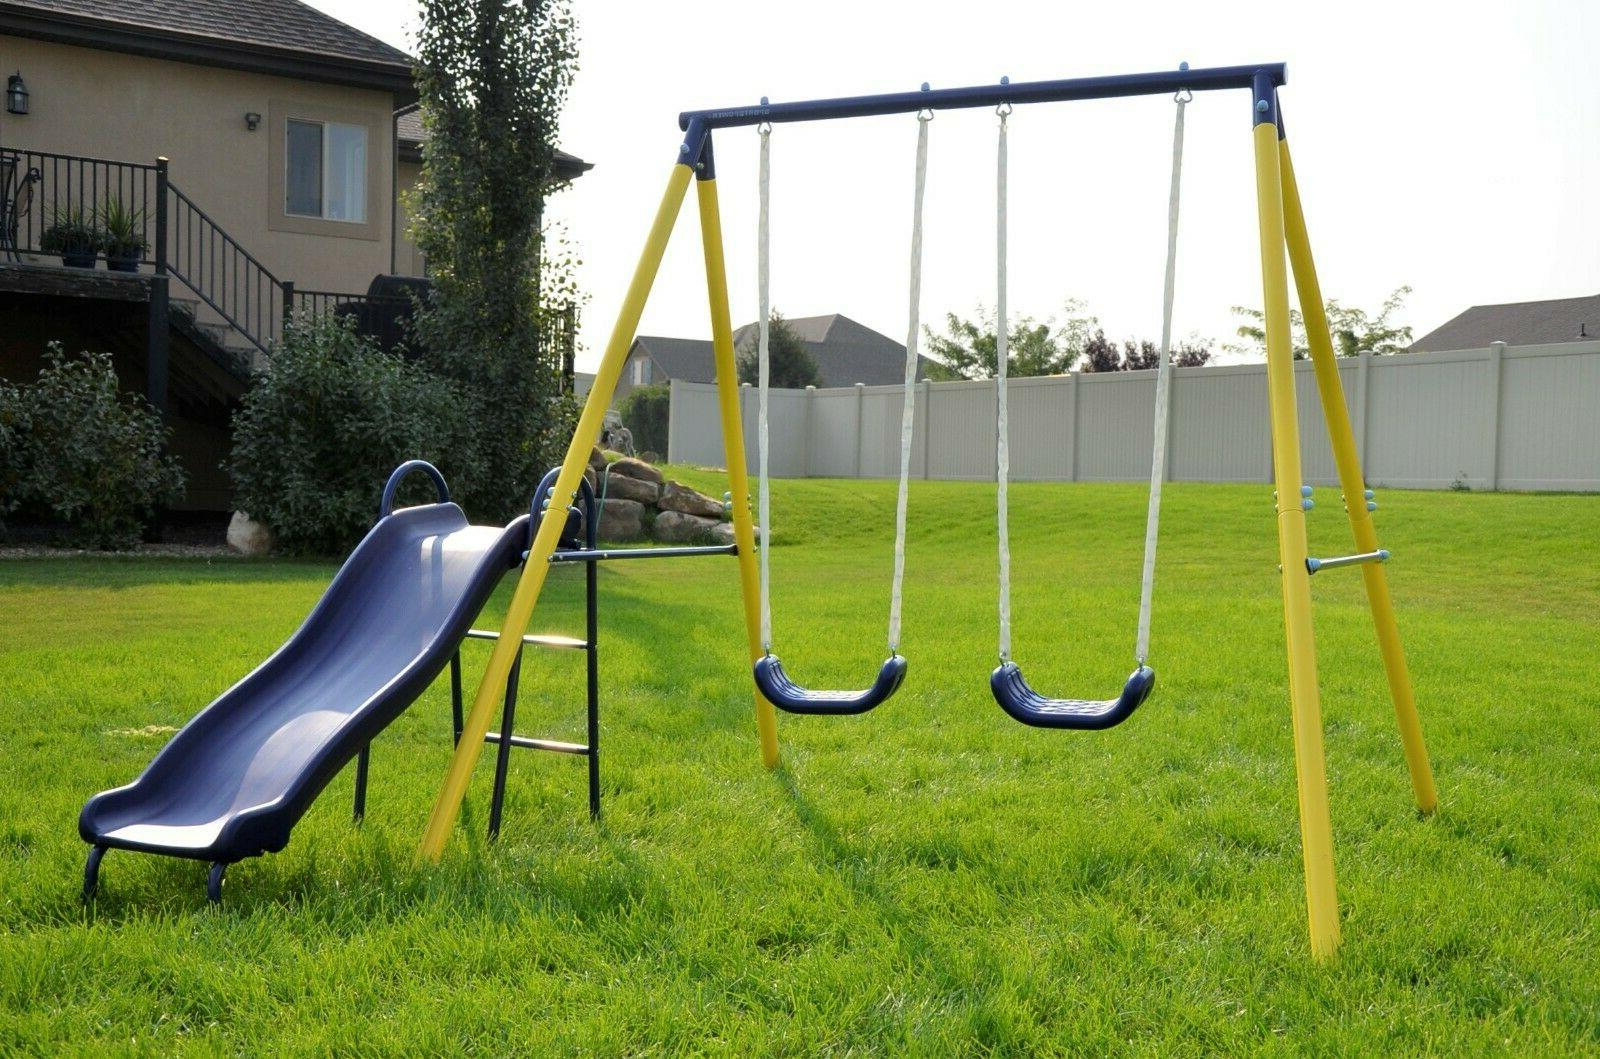 Fun Metal Swing Set Kids Slide Backyard Playset